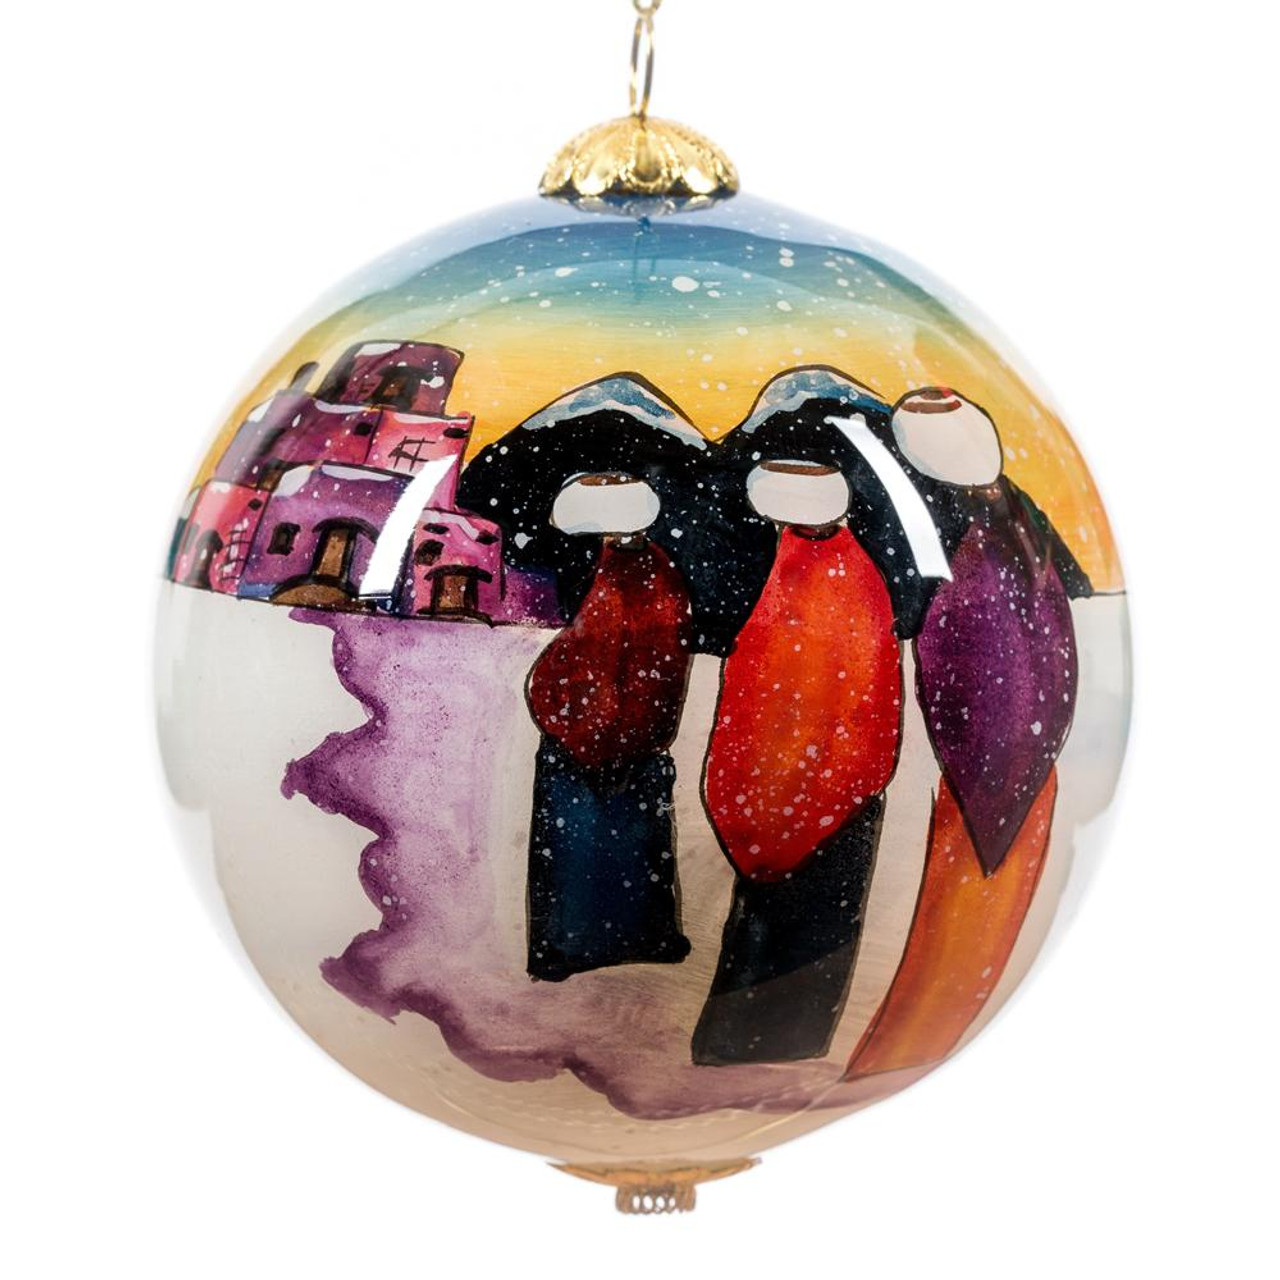 "Taos at Twilight - 3"" Ornament Set of 2"